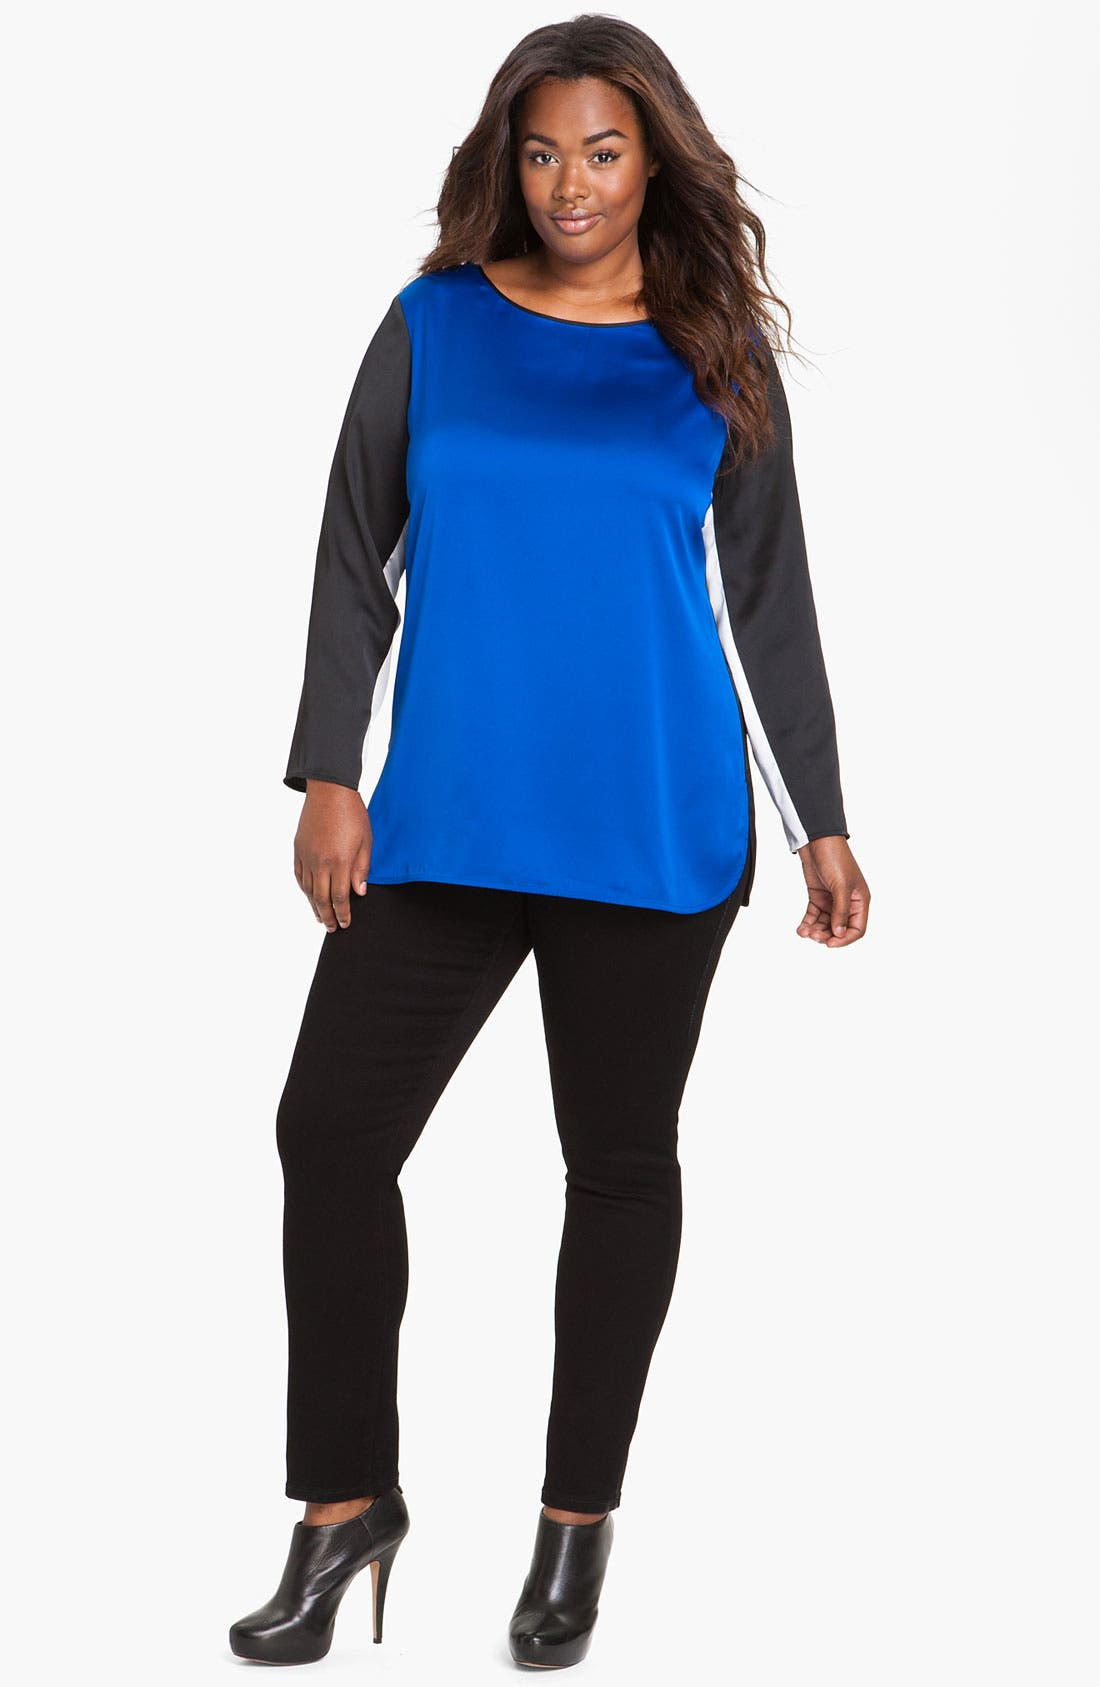 Alternate Image 1 Selected - Vince Camuto Colorblock Top (Plus)